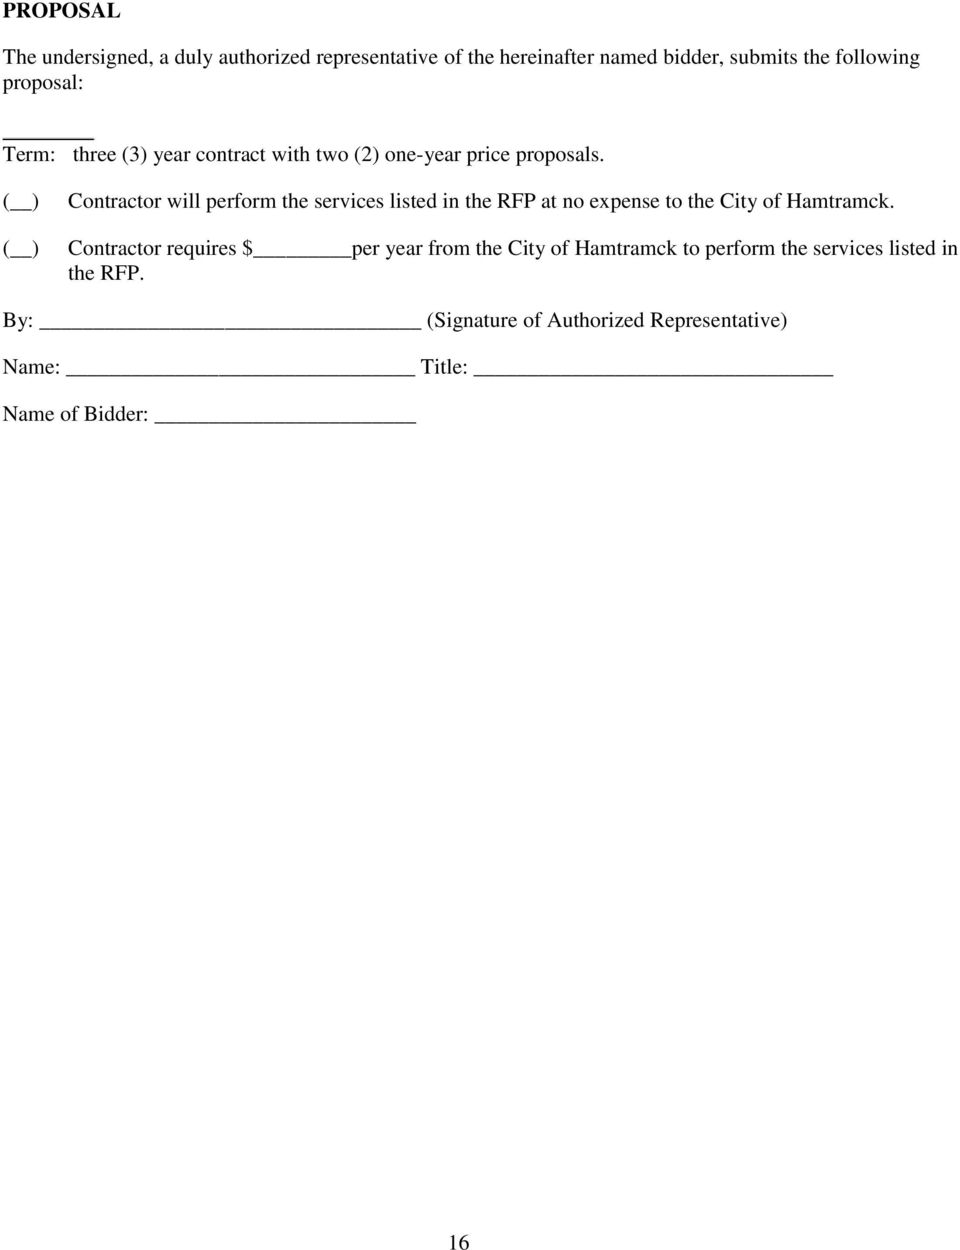 ( ) ( ) Contractor will perform the services listed in the RFP at no expense to the City of Hamtramck.